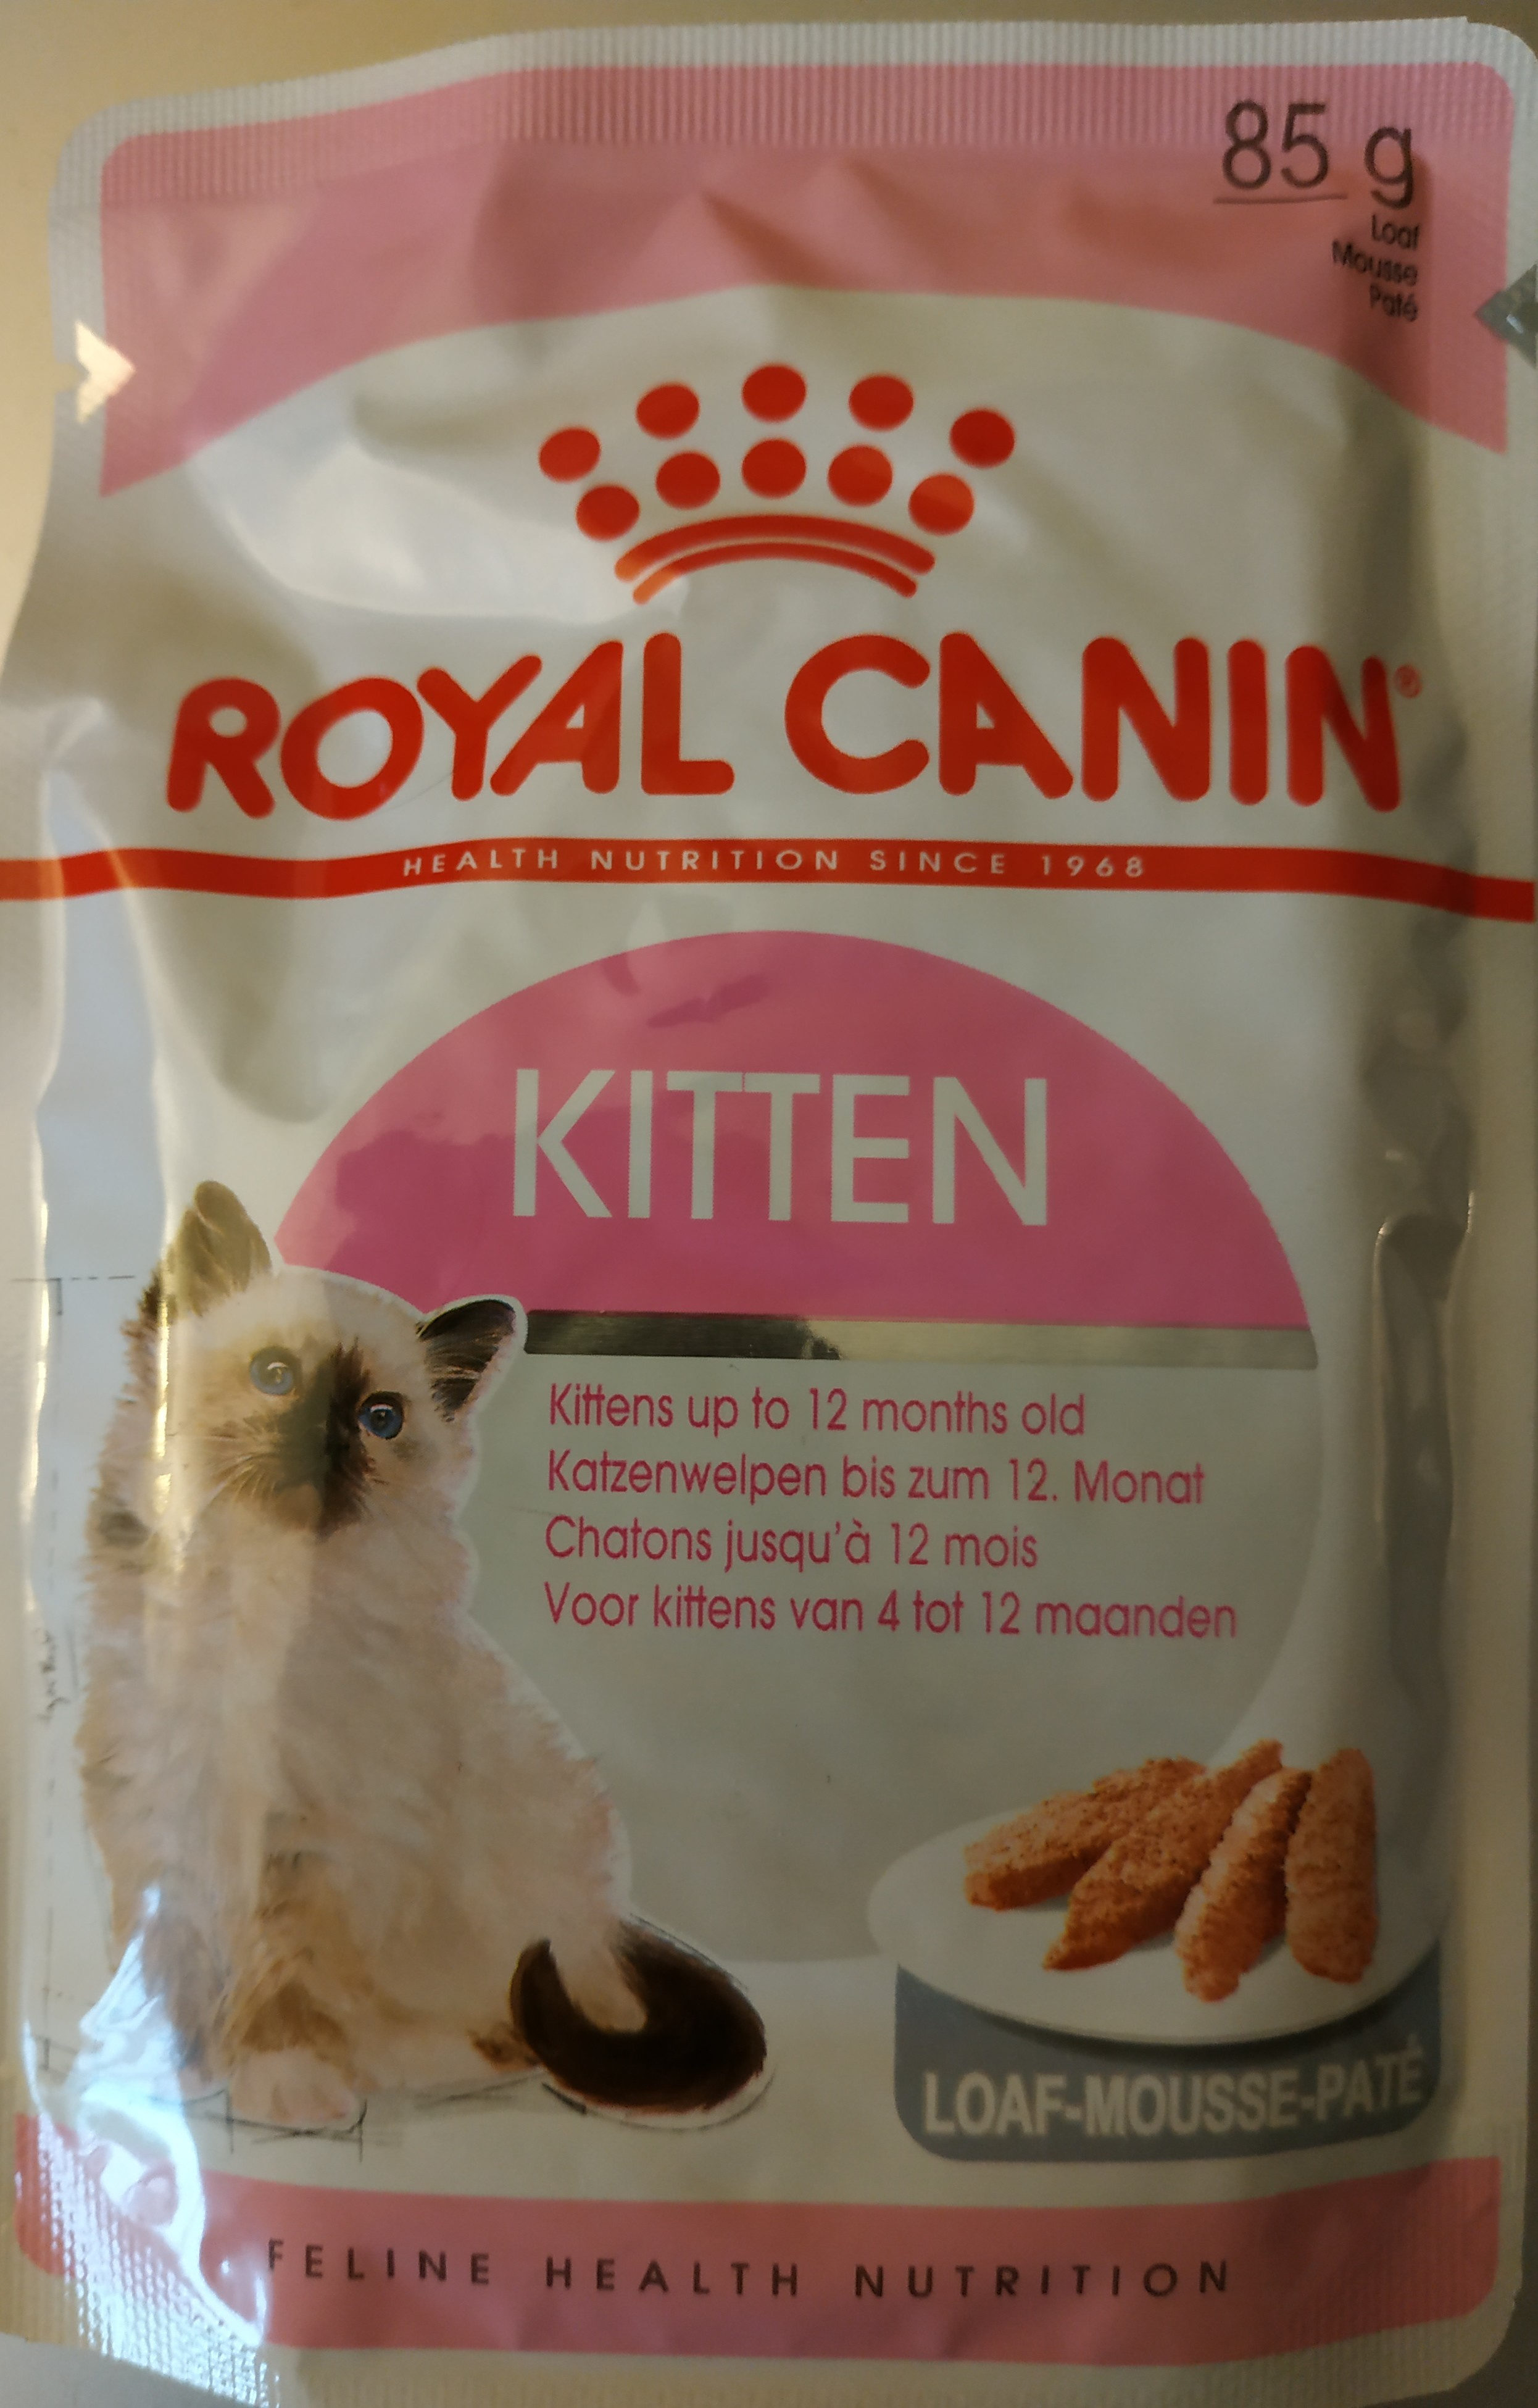 royal canin kitten mousse - Product - fr